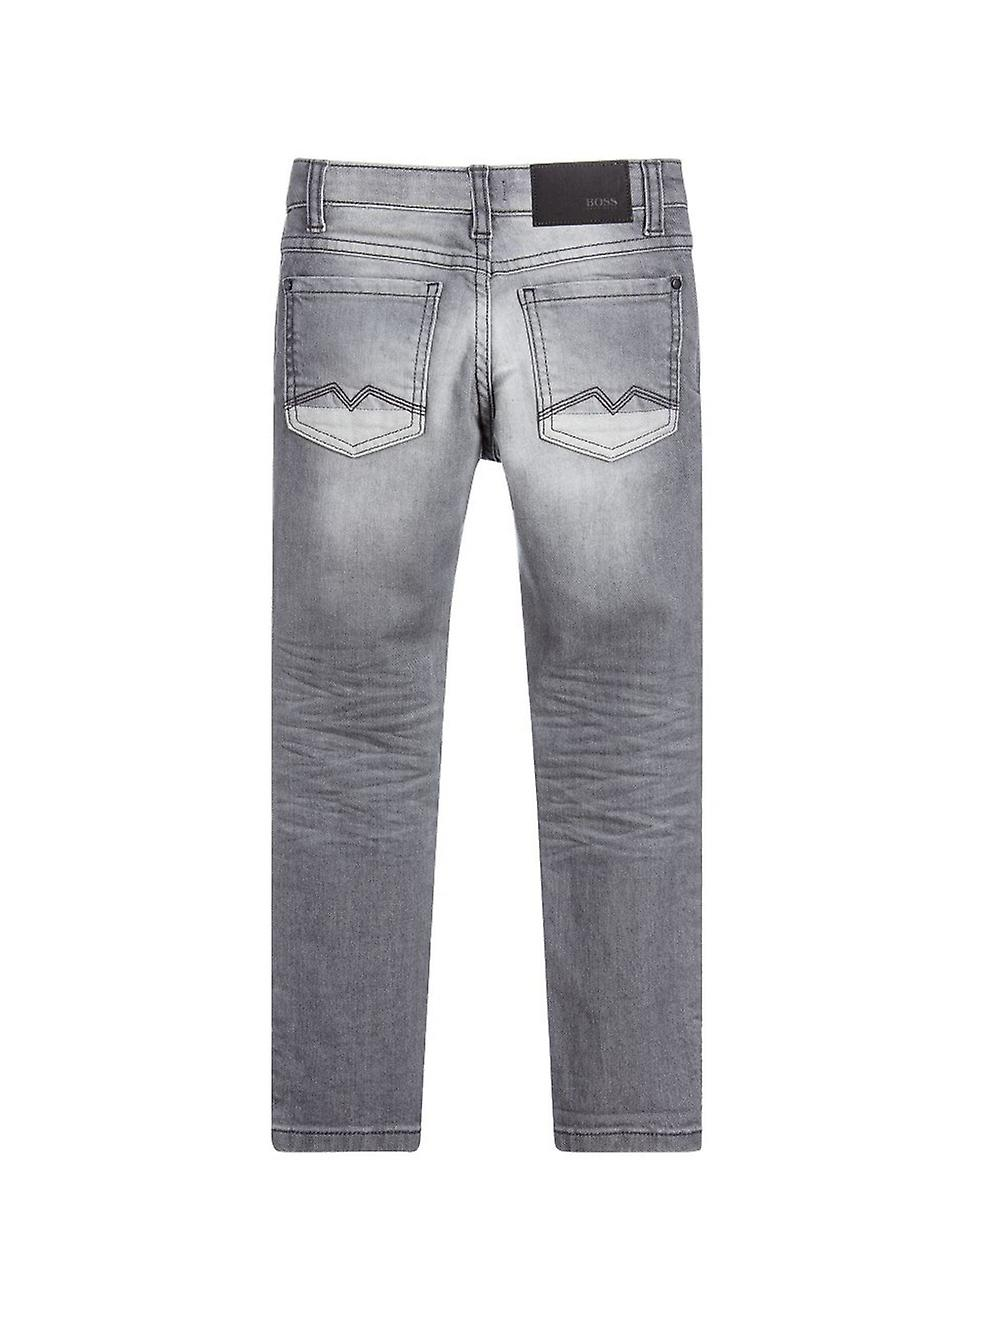 BOSS Kidswear Light Grey Skinny Fit Jean